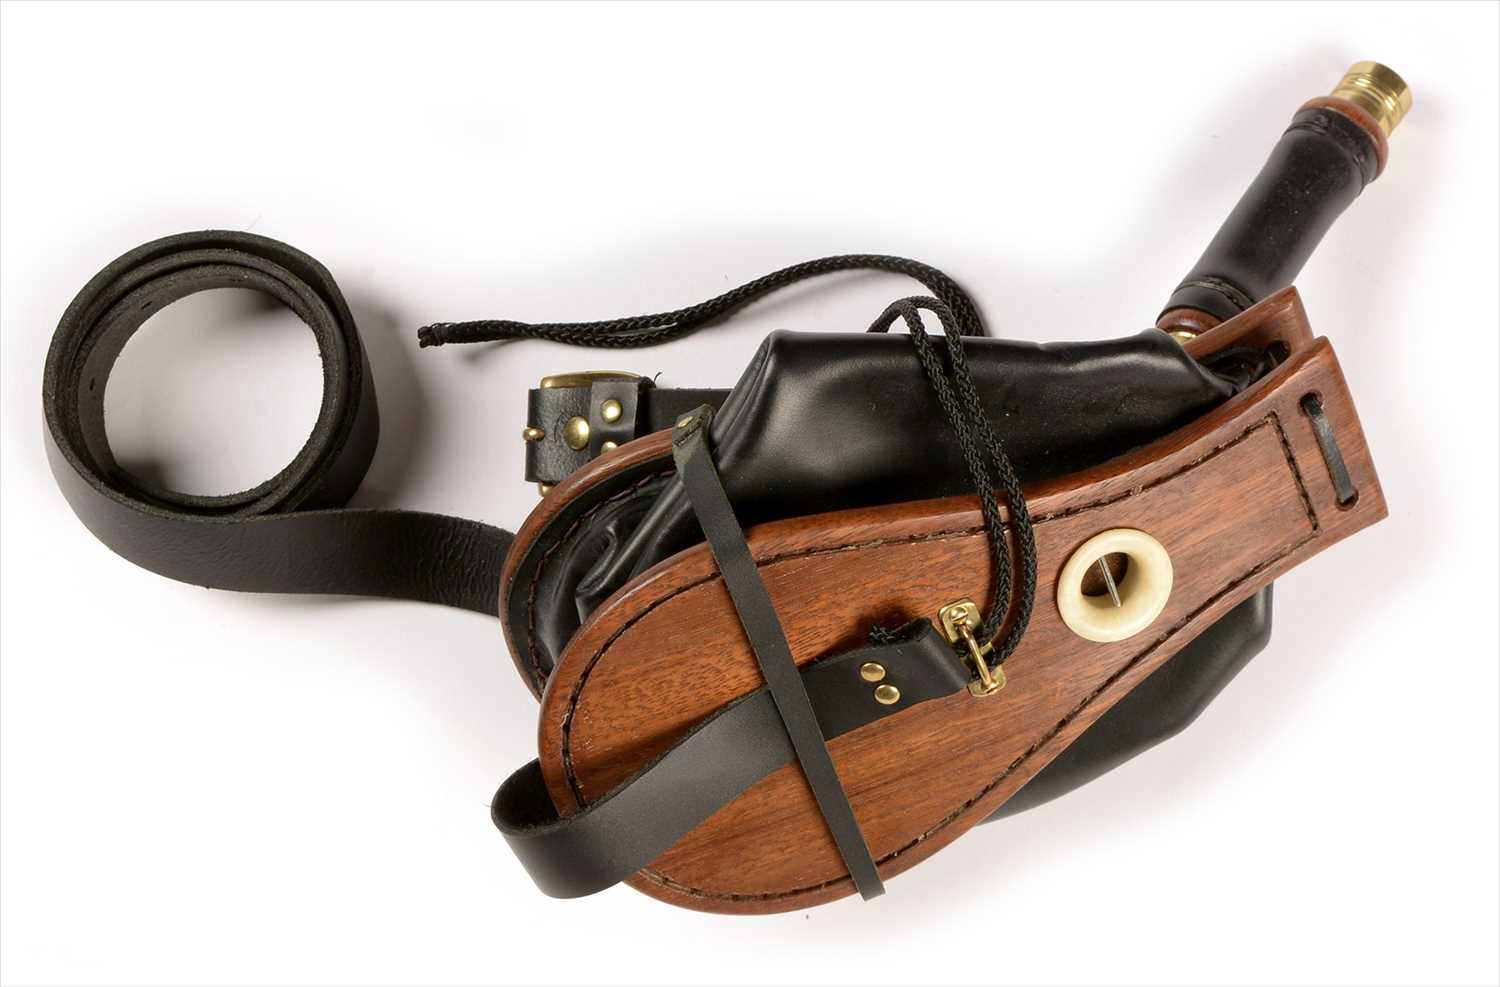 Lot 184 - Set of mahogany and leather bellows.